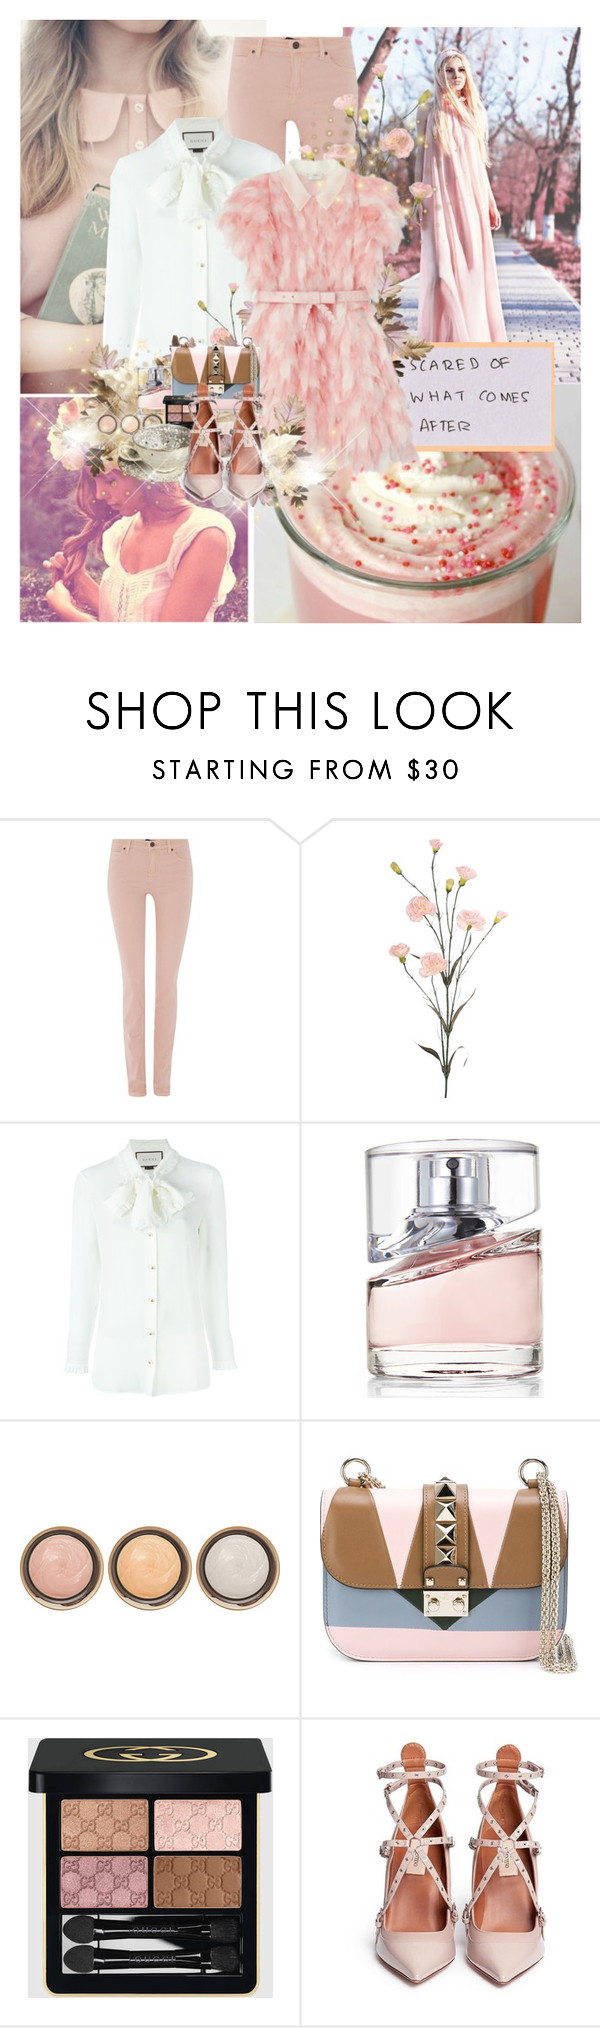 """Elemental: Aurora"" by lady-redrise ❤ liked on Polyvore featuring Oui, Gucci, HUGO, By Terry and Valentino"